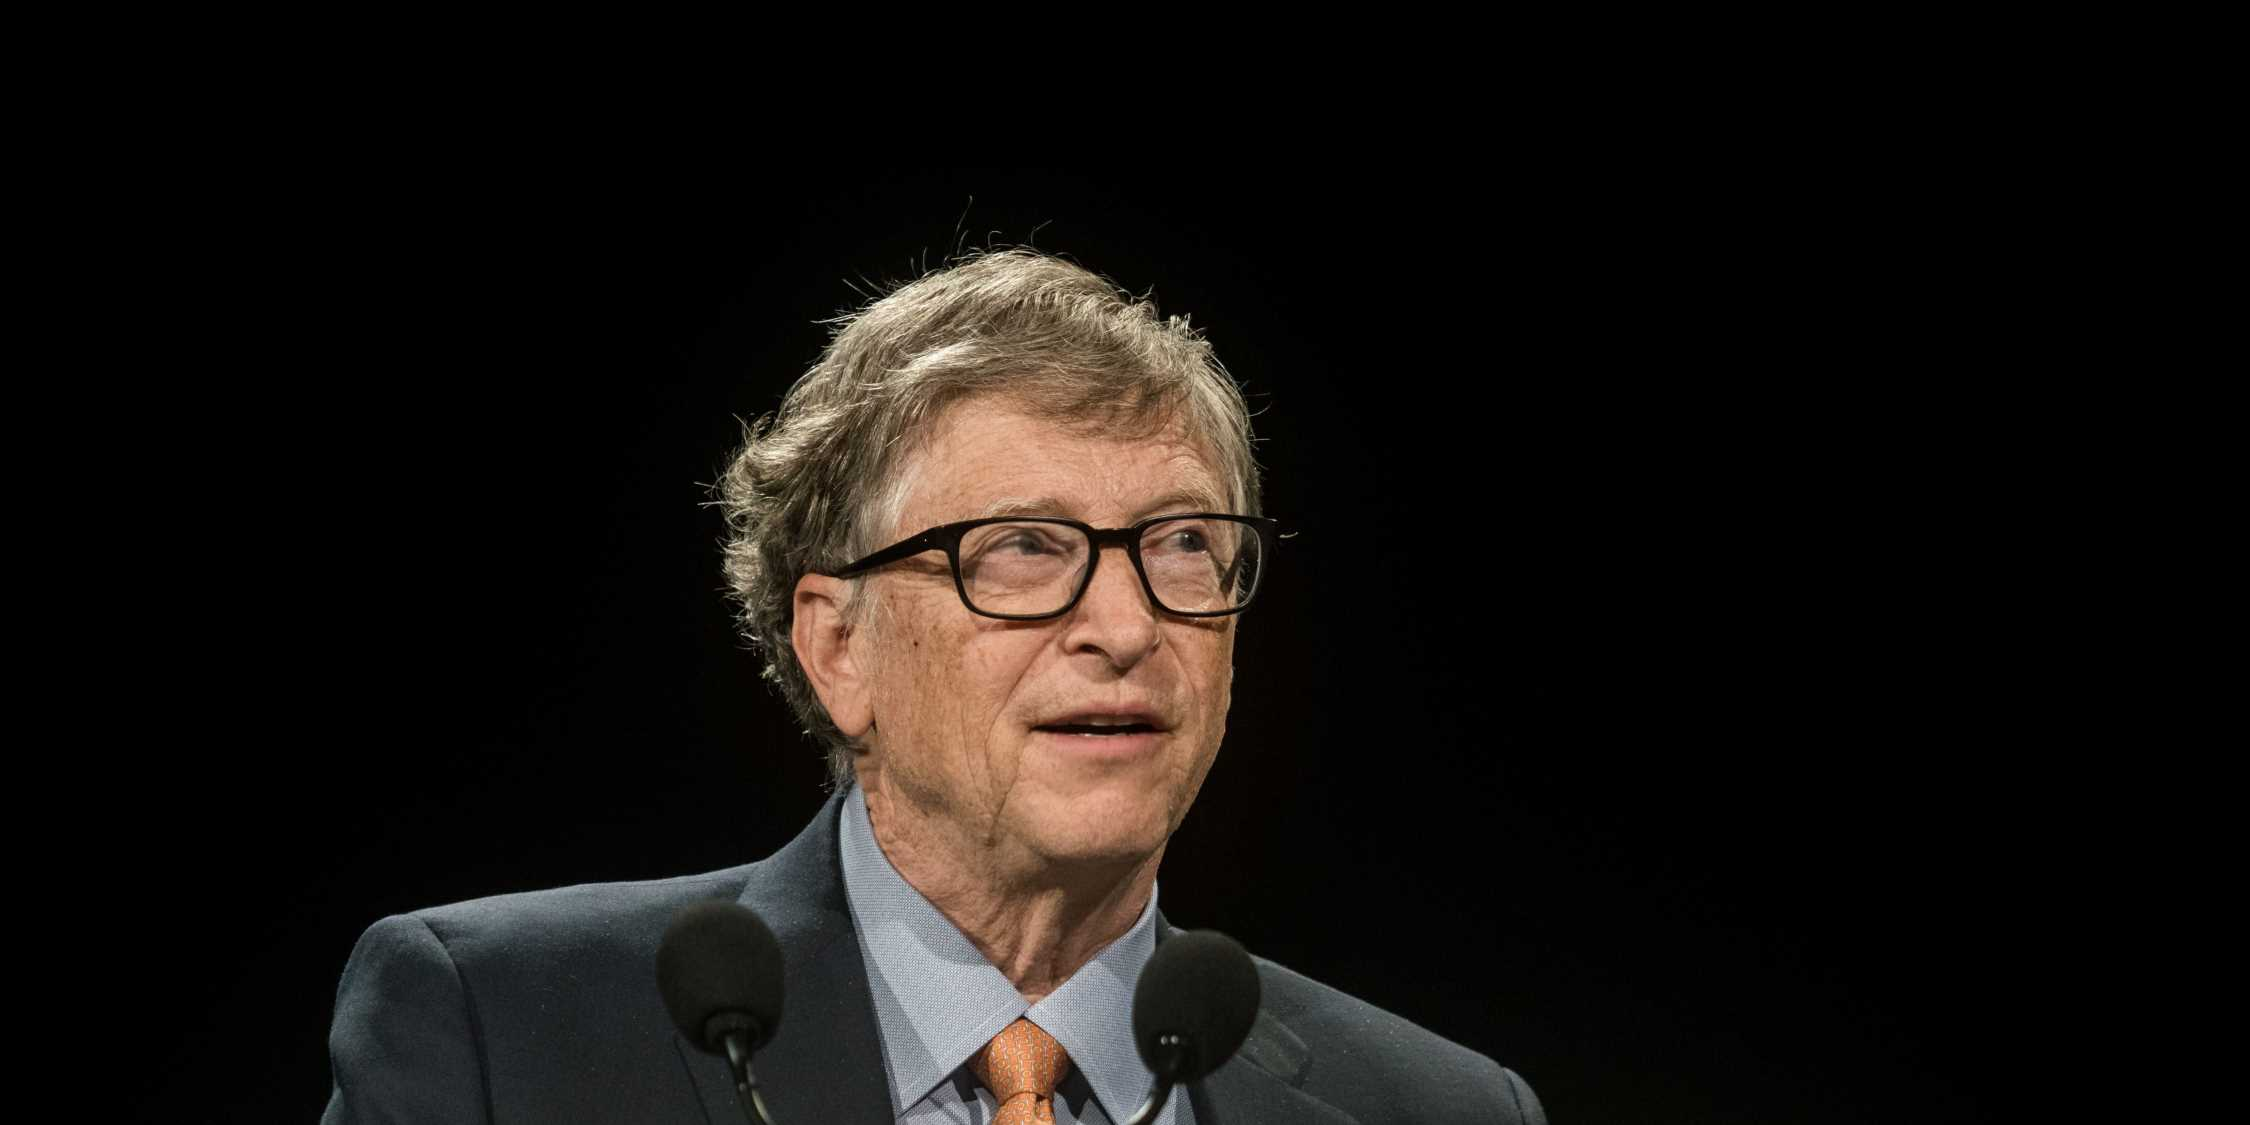 Bill Gates Says We Need to Do 3 Things to Better Manage Pandemics